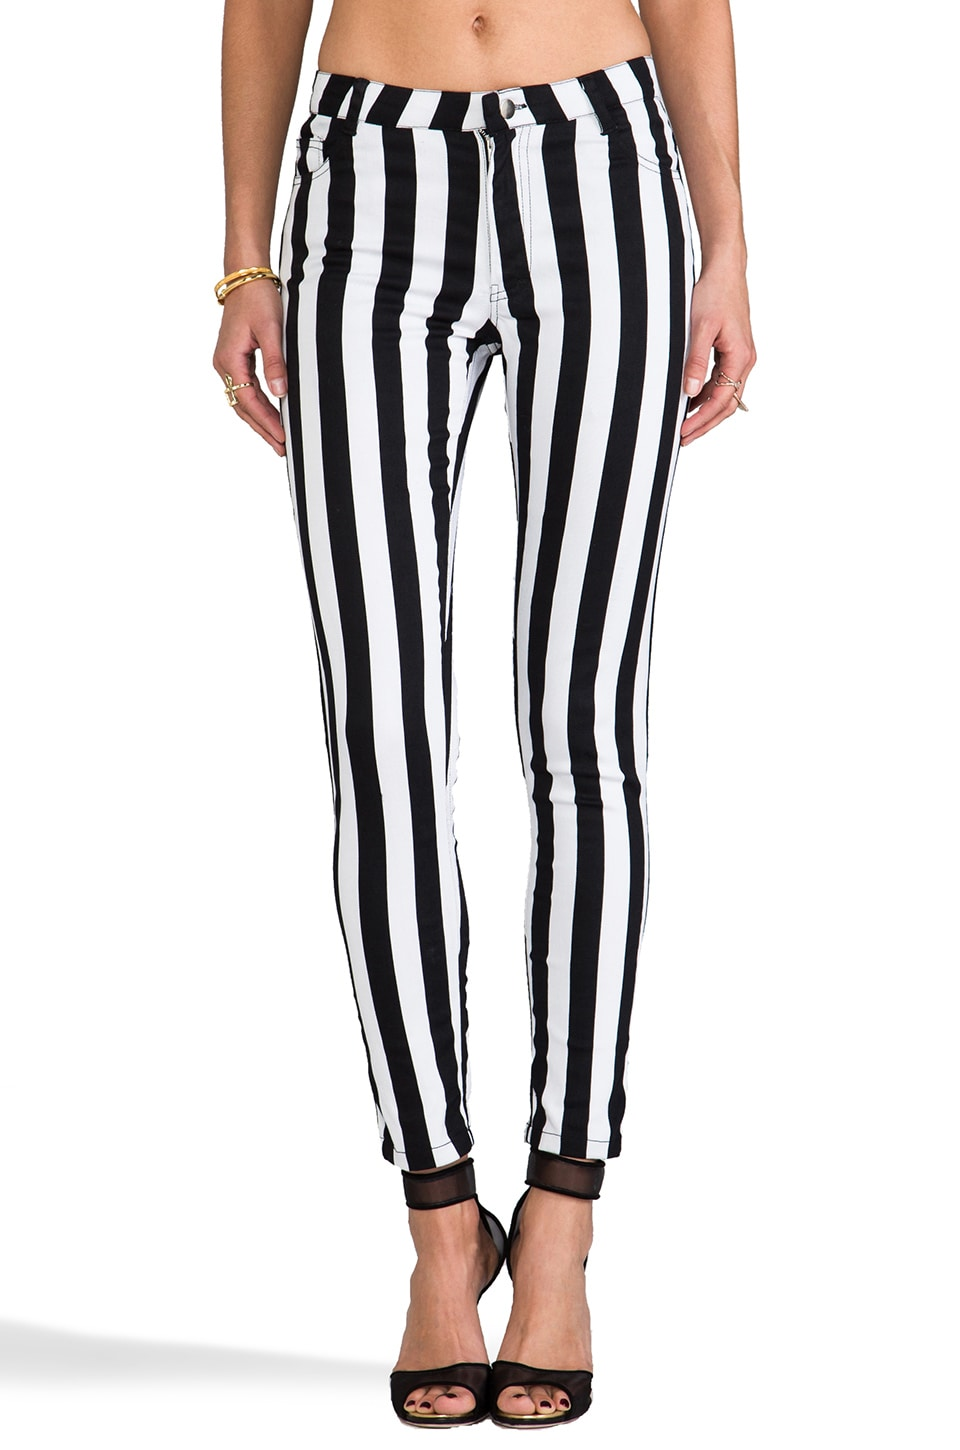 FAIRGROUND Electric Skinny Jeans in Electric Black & White Stripe